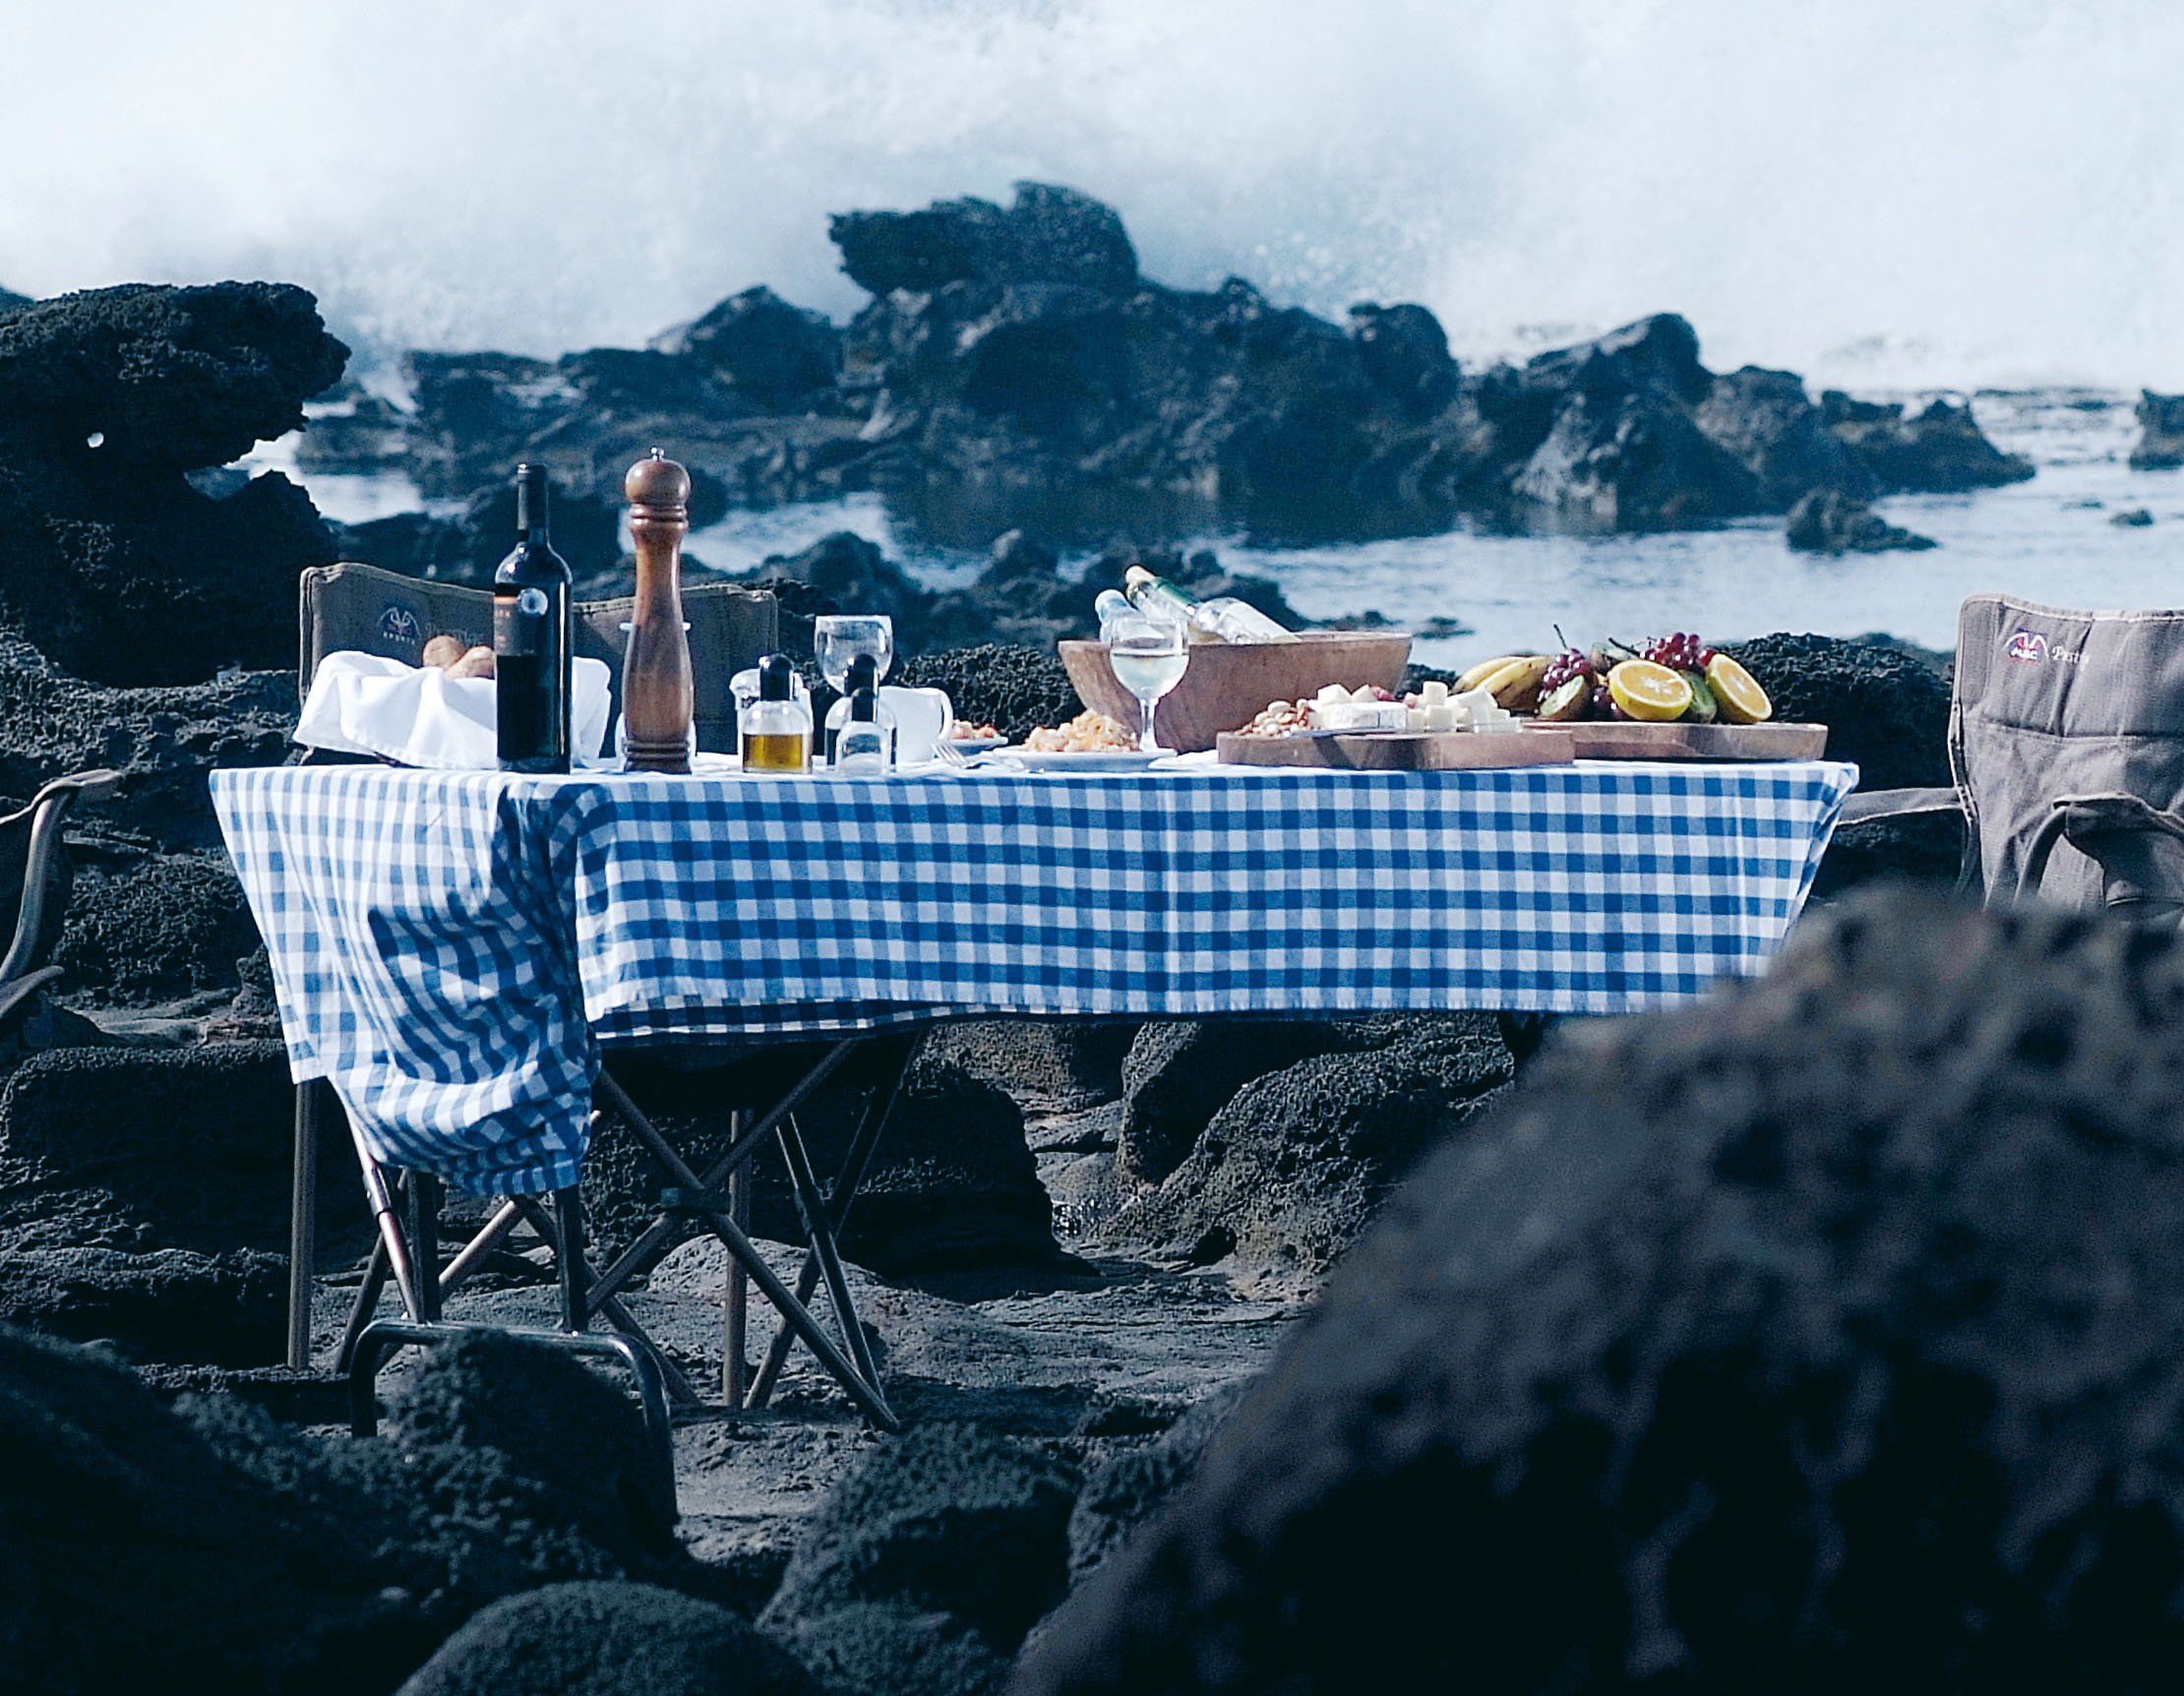 A picnic on Easter Island, Remote Islands